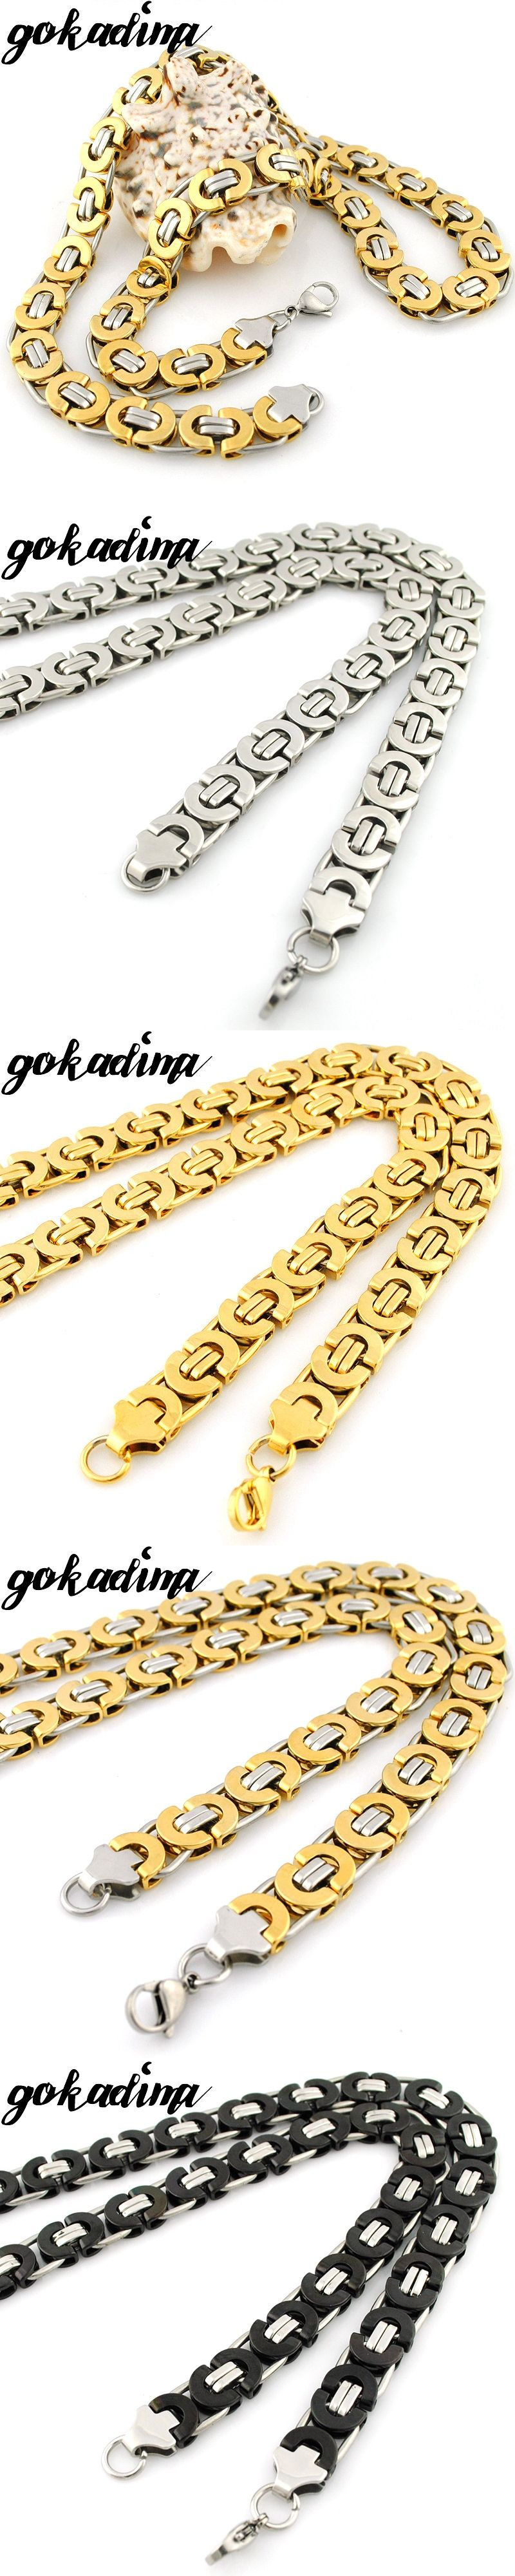 jewelry design chains mens boys gold necklace mm jewellery decorative wheat home chain wholesale